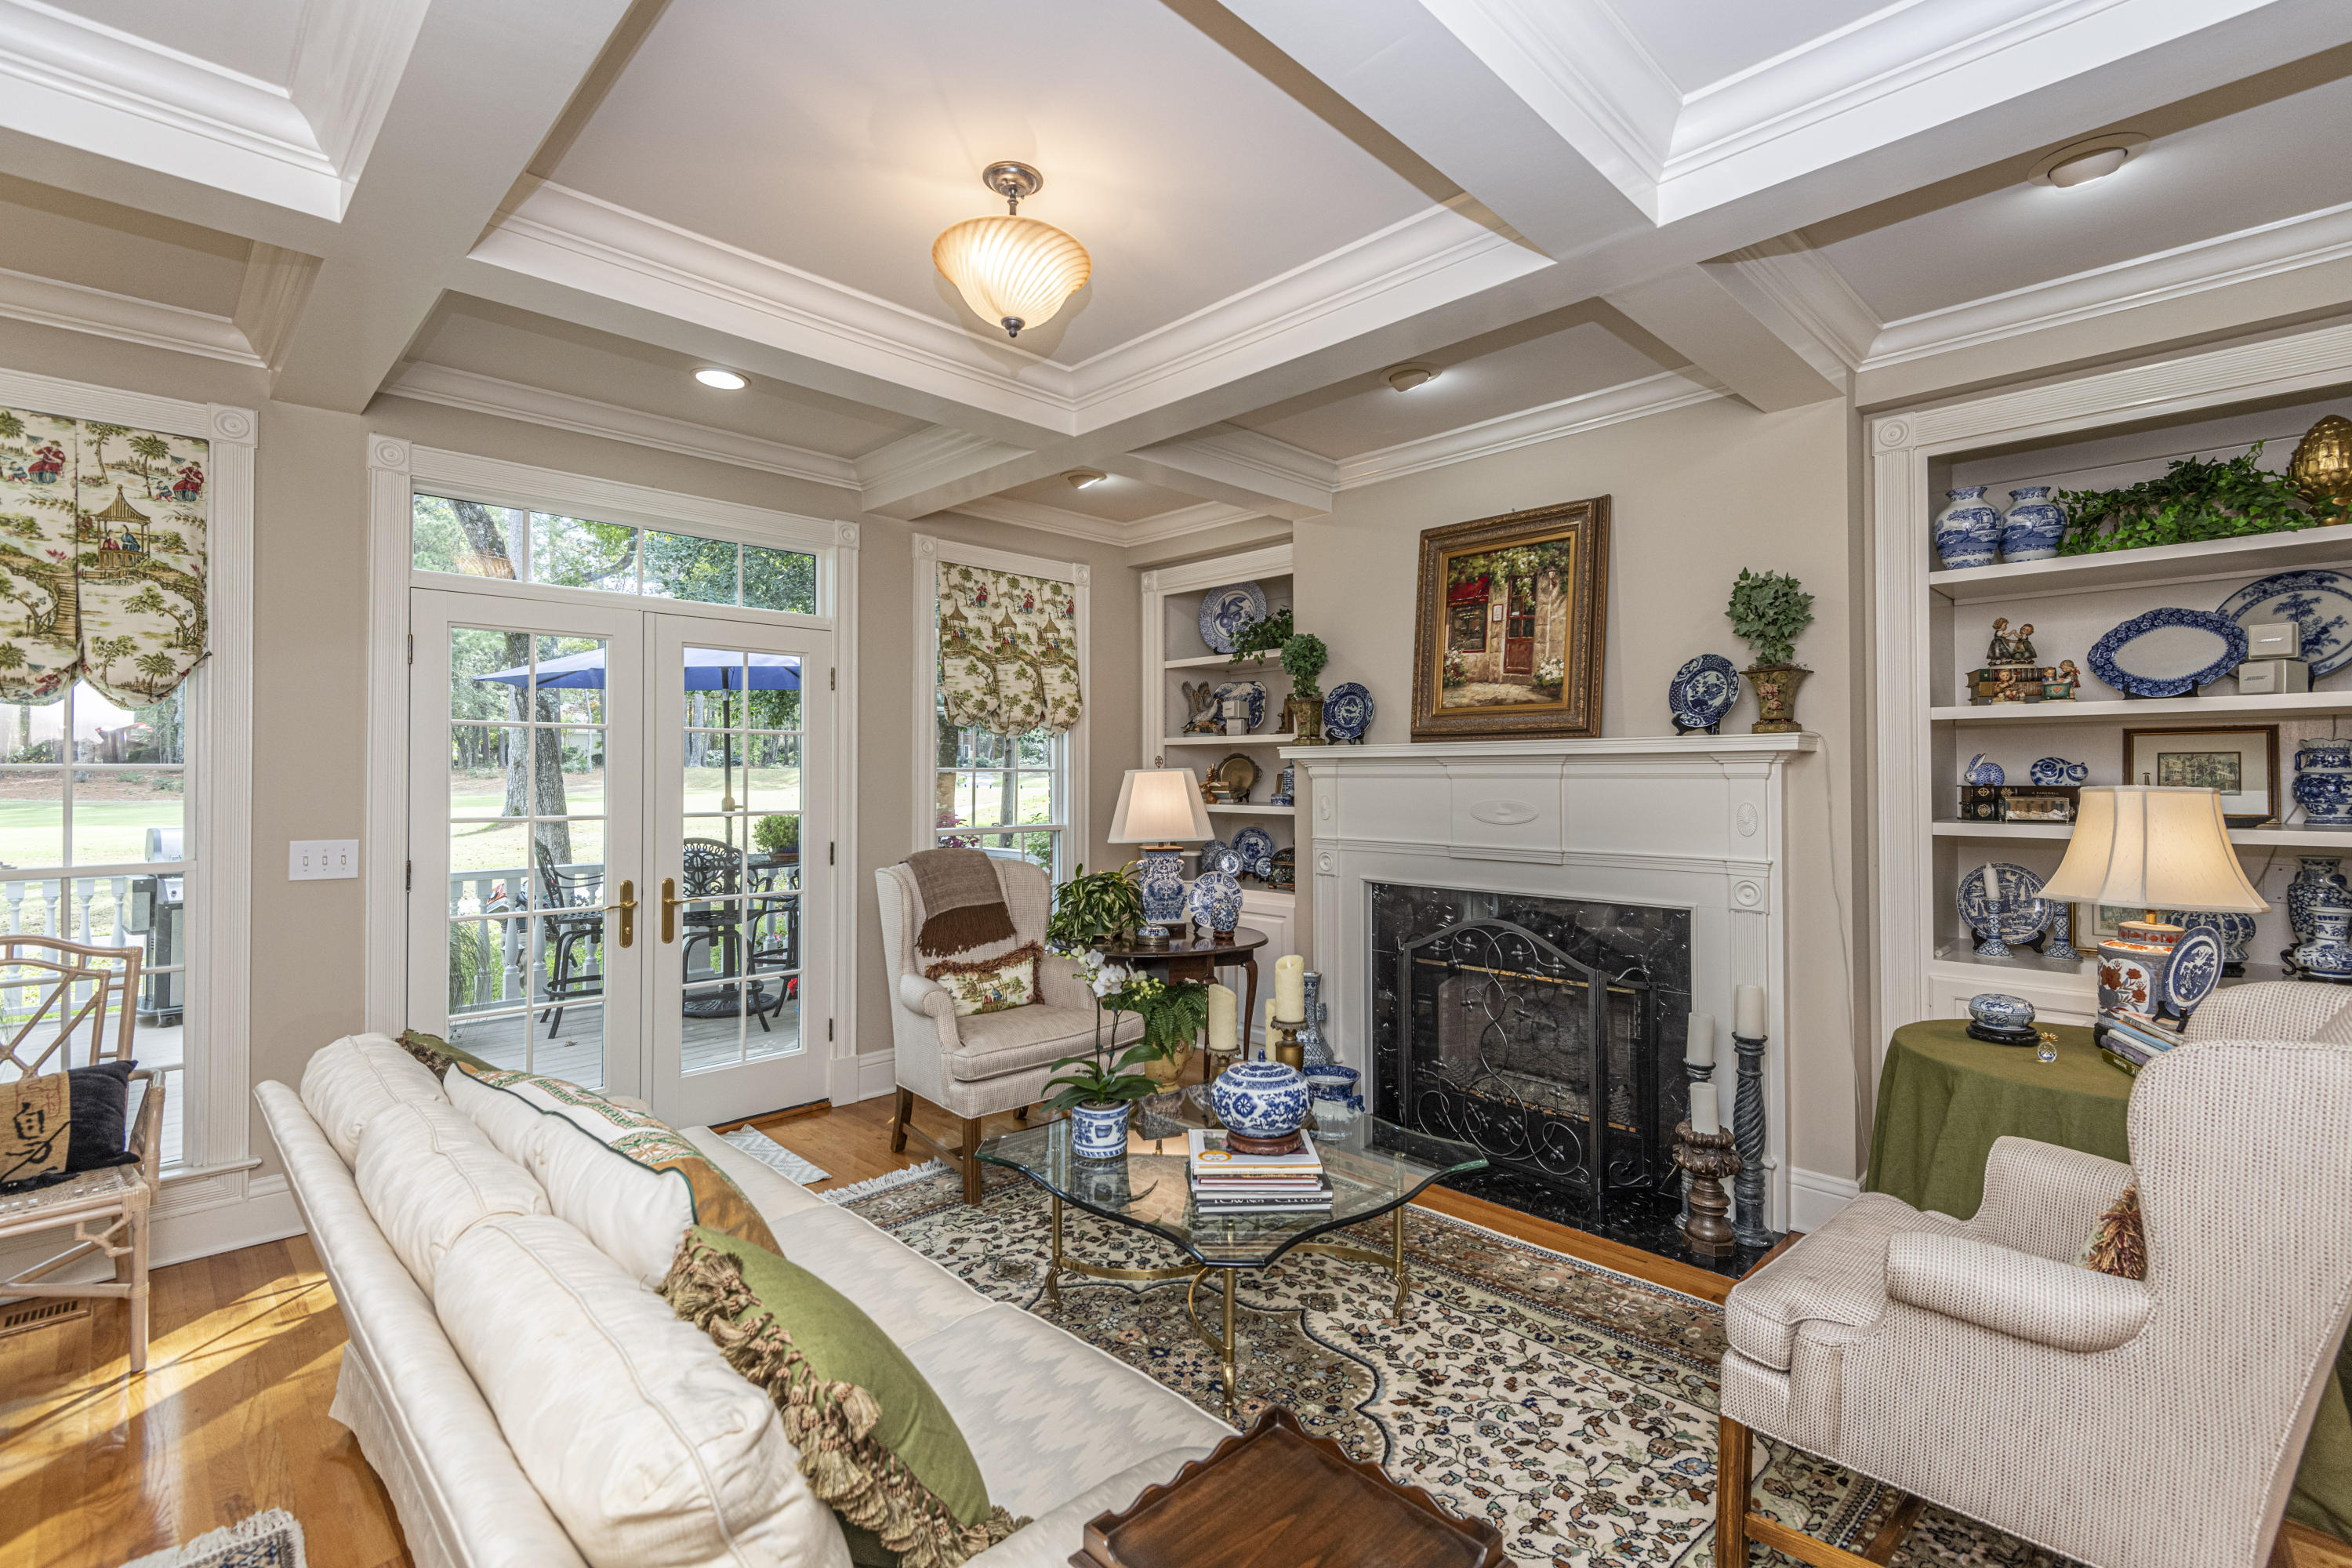 Coosaw Creek Country Club Homes For Sale - 8642 Fairway Woods, North Charleston, SC - 25